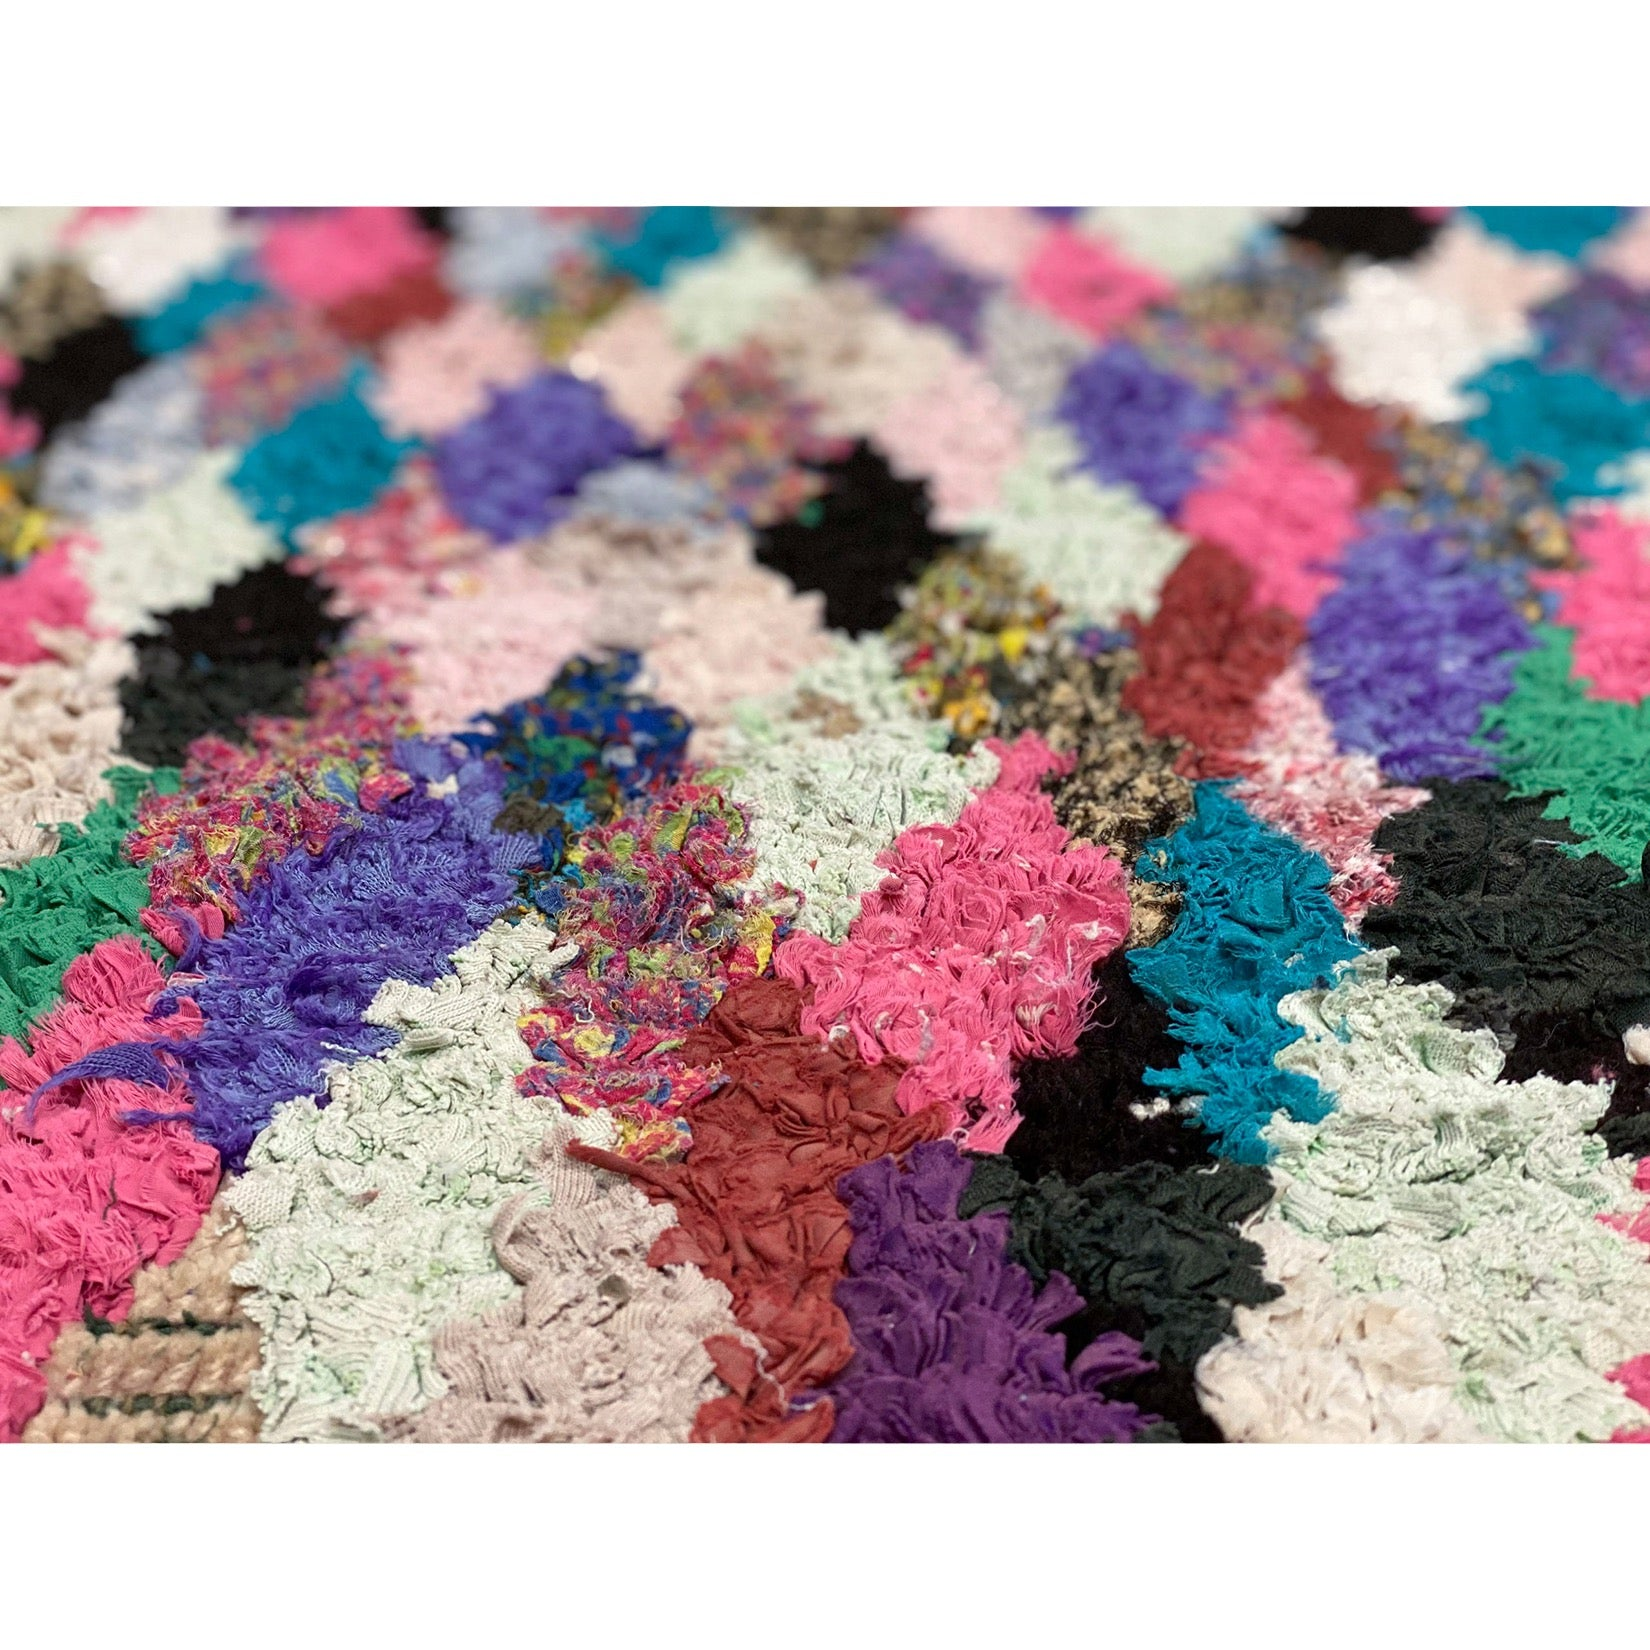 Moroccan playroom rug with colorful details - Kantara | Moroccan Rug